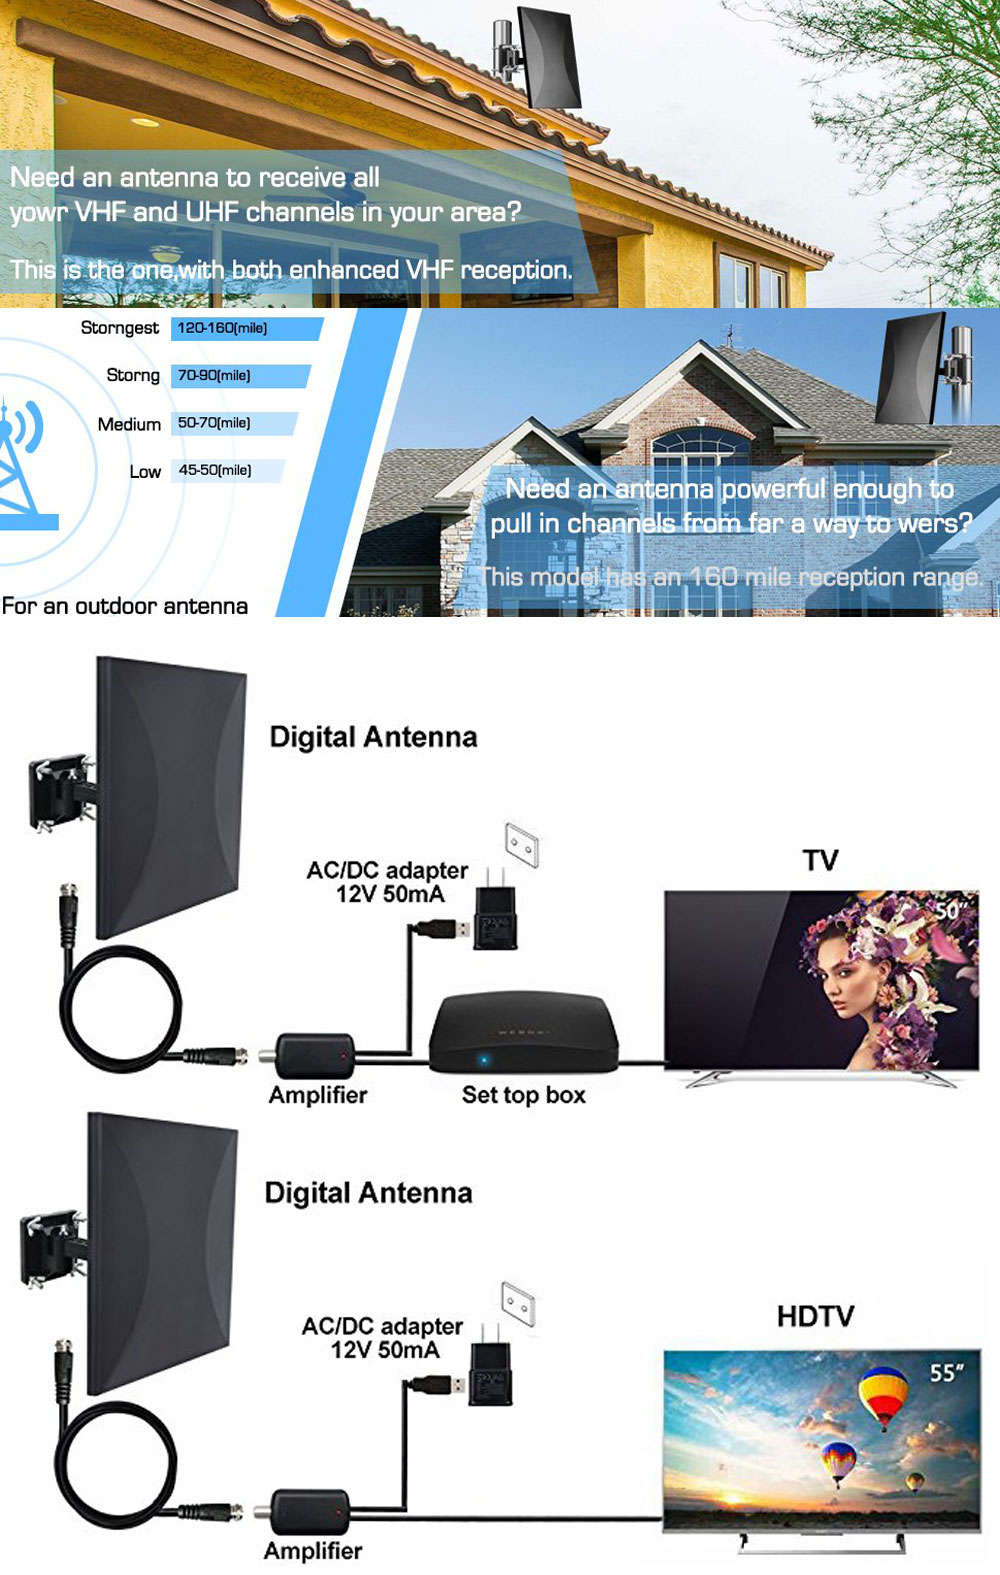 US $27 73 48% OFF|Satxtrem 318A 160 Miles Outdoor Amplified TV Antenna  Upgrade Omni Directional HDTV Antenna With 32 8ft Coax Cable For  FM/VHF/UHF-in